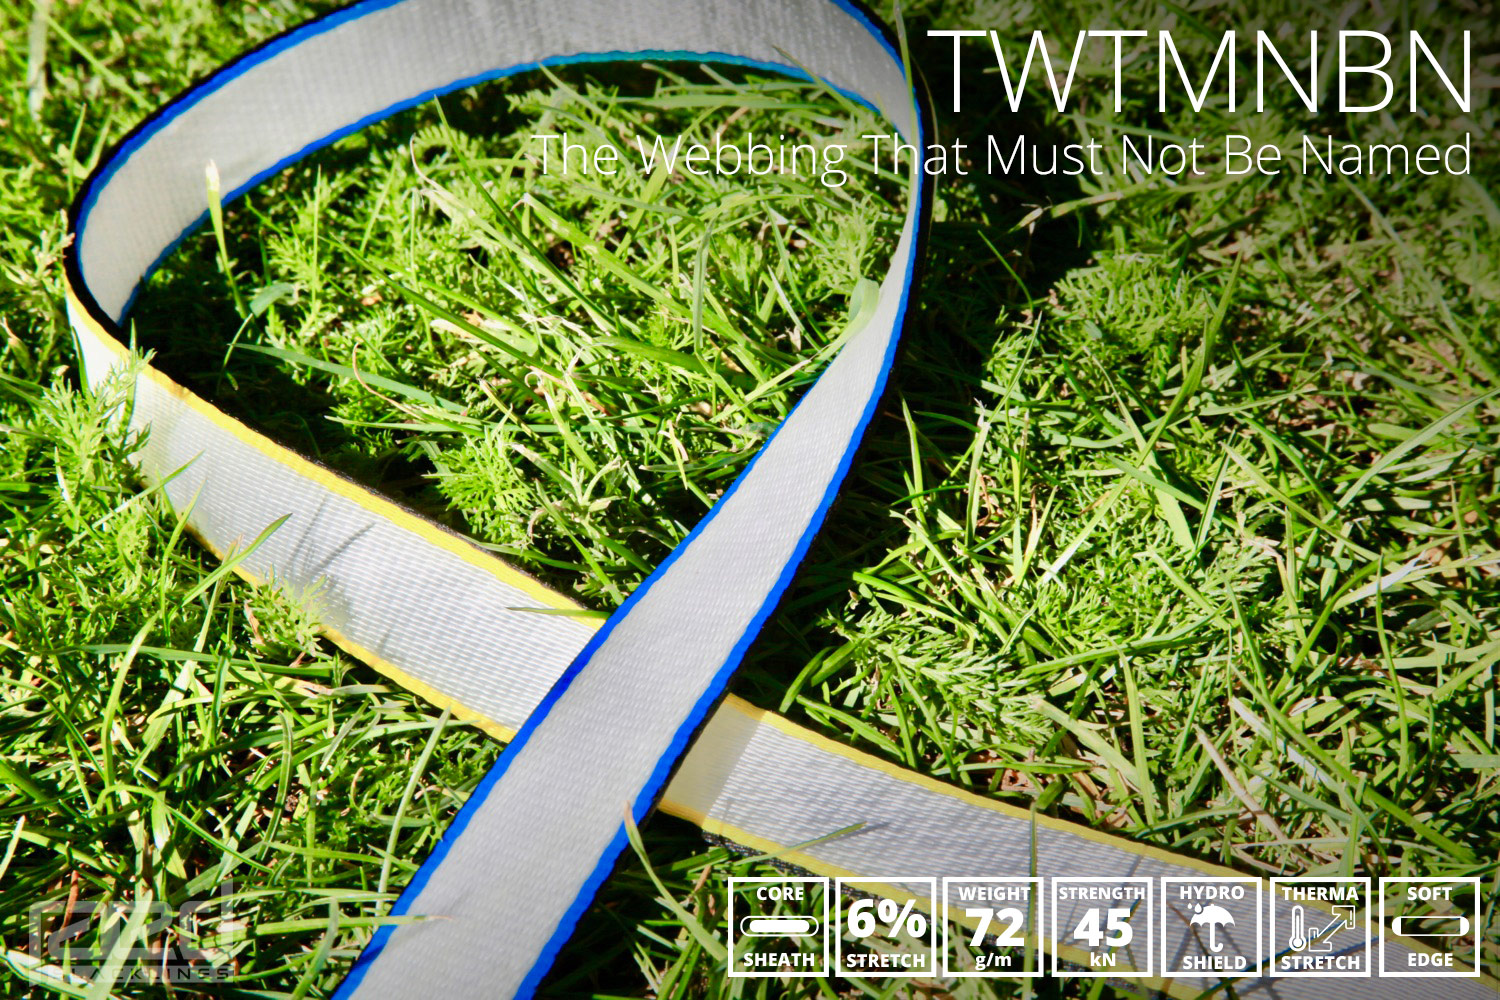 TWTMNBN - The webbing that must not be named